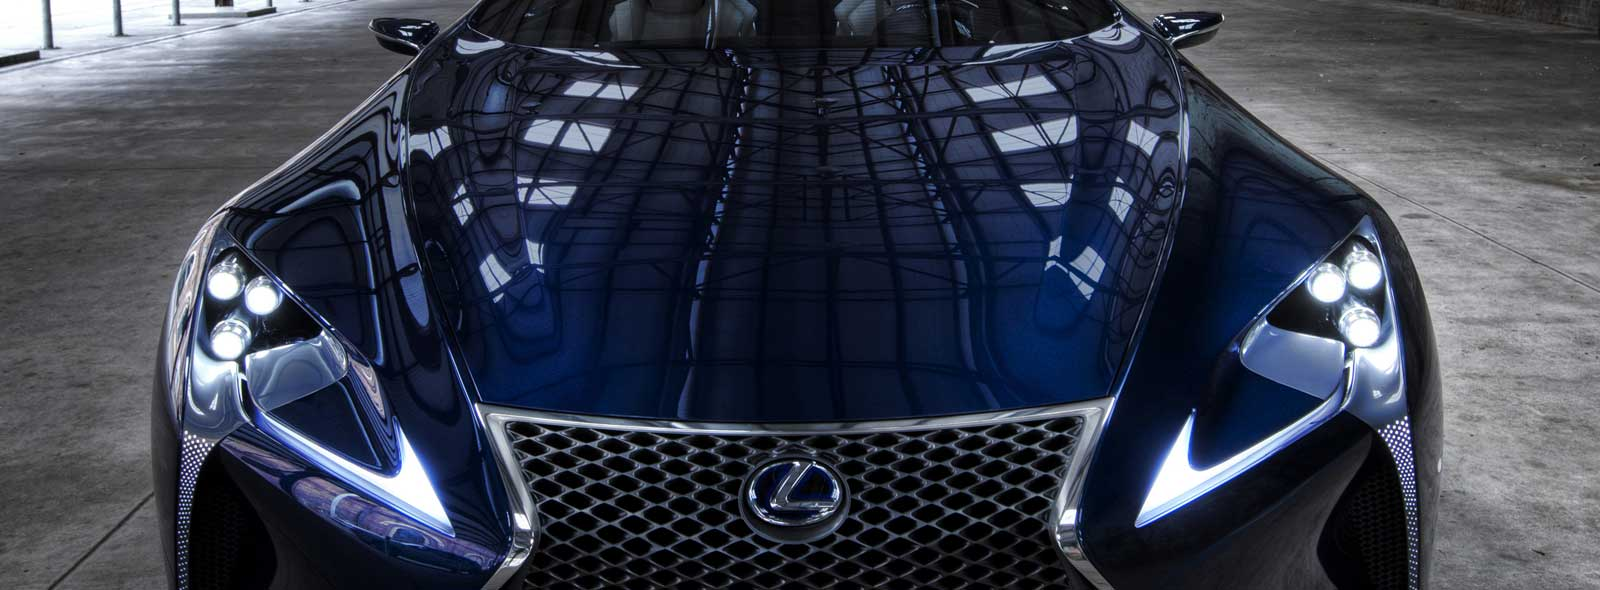 Lexus LF-LC Concept Sports Car Front